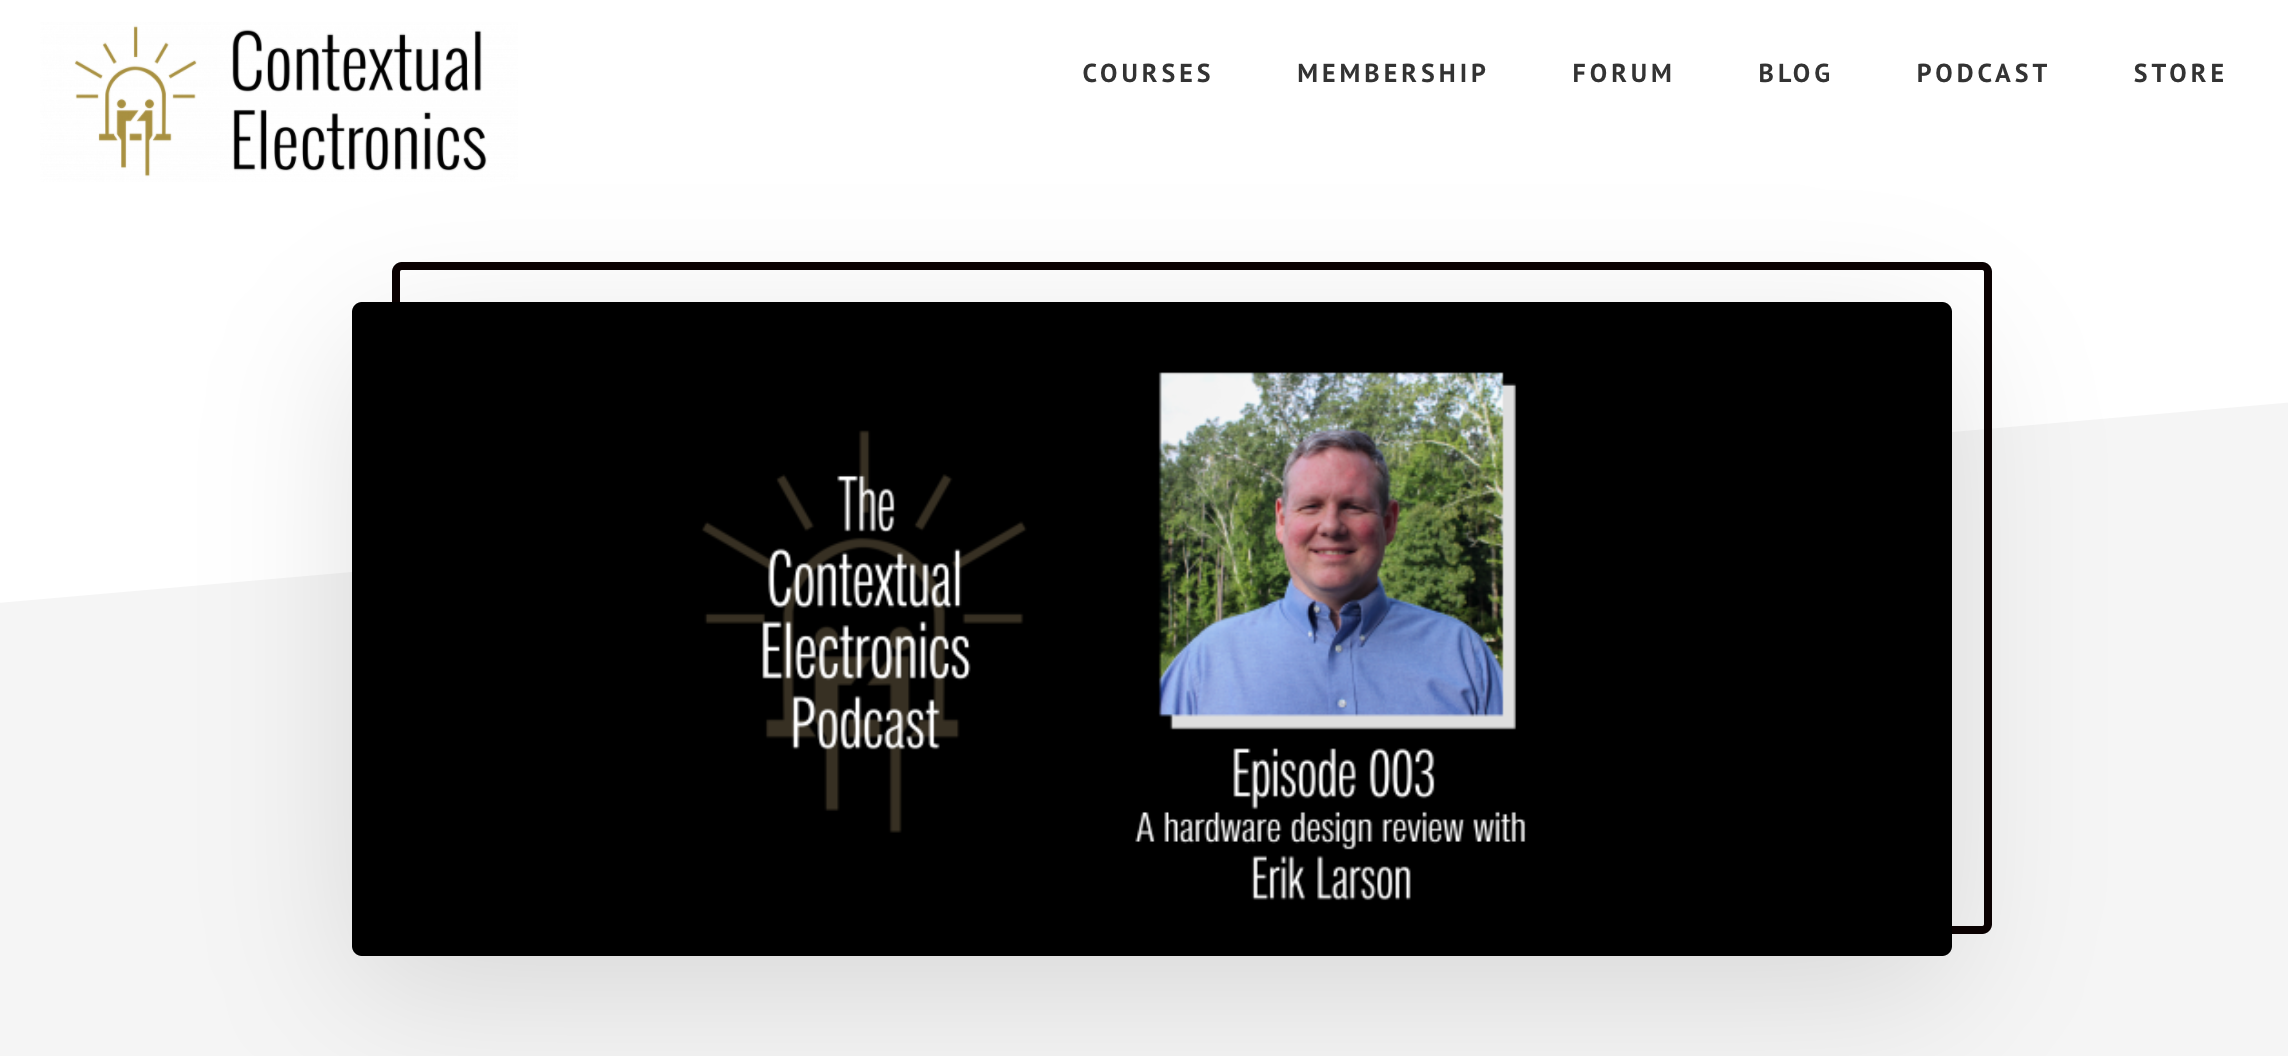 Contextual Electronics Podcast